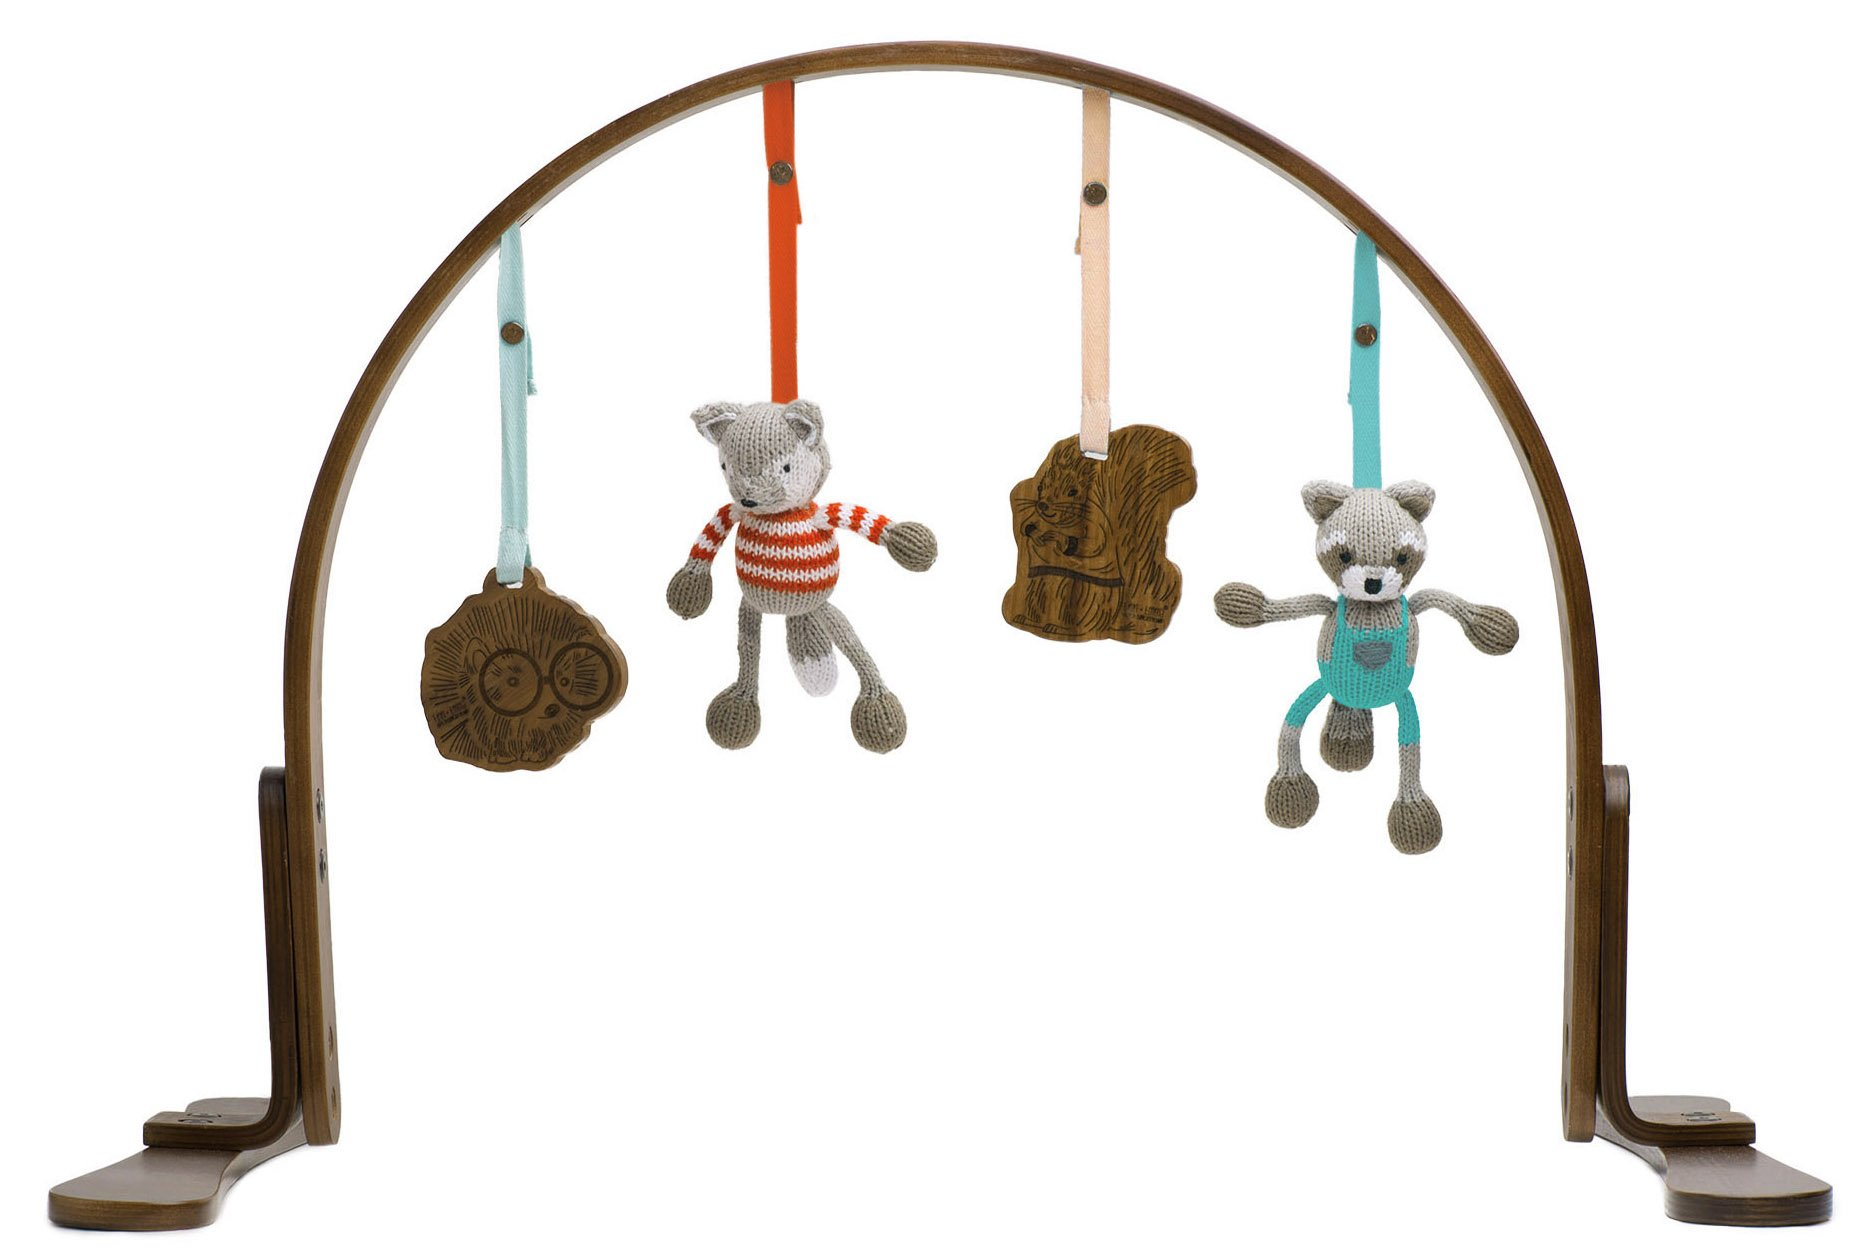 Finn + Emma Handmade Baby Wooden Play Gym, 100% Organic, Eco-Friendly, and Fair Trade, Perfect for Newborns or Toddlers